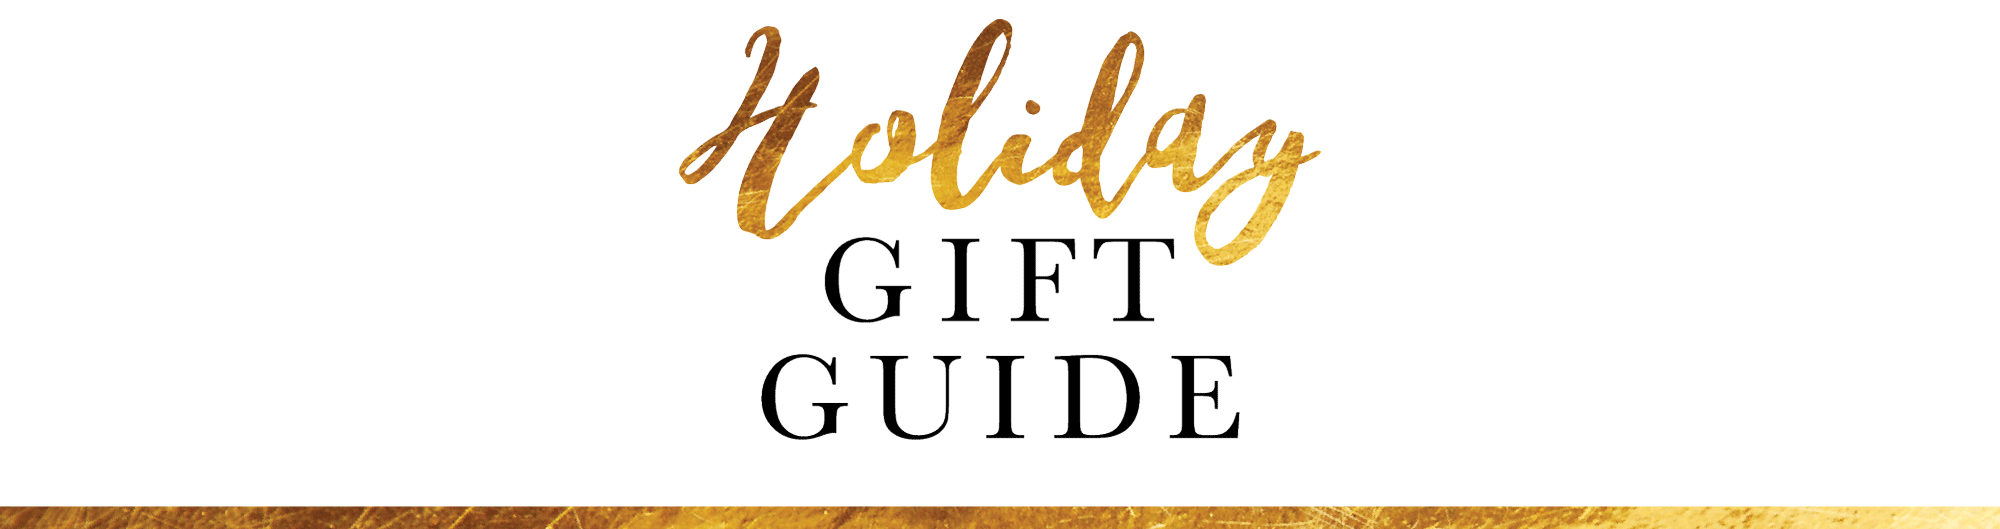 Holiday-Gift-Guide-Simple-Banner.png